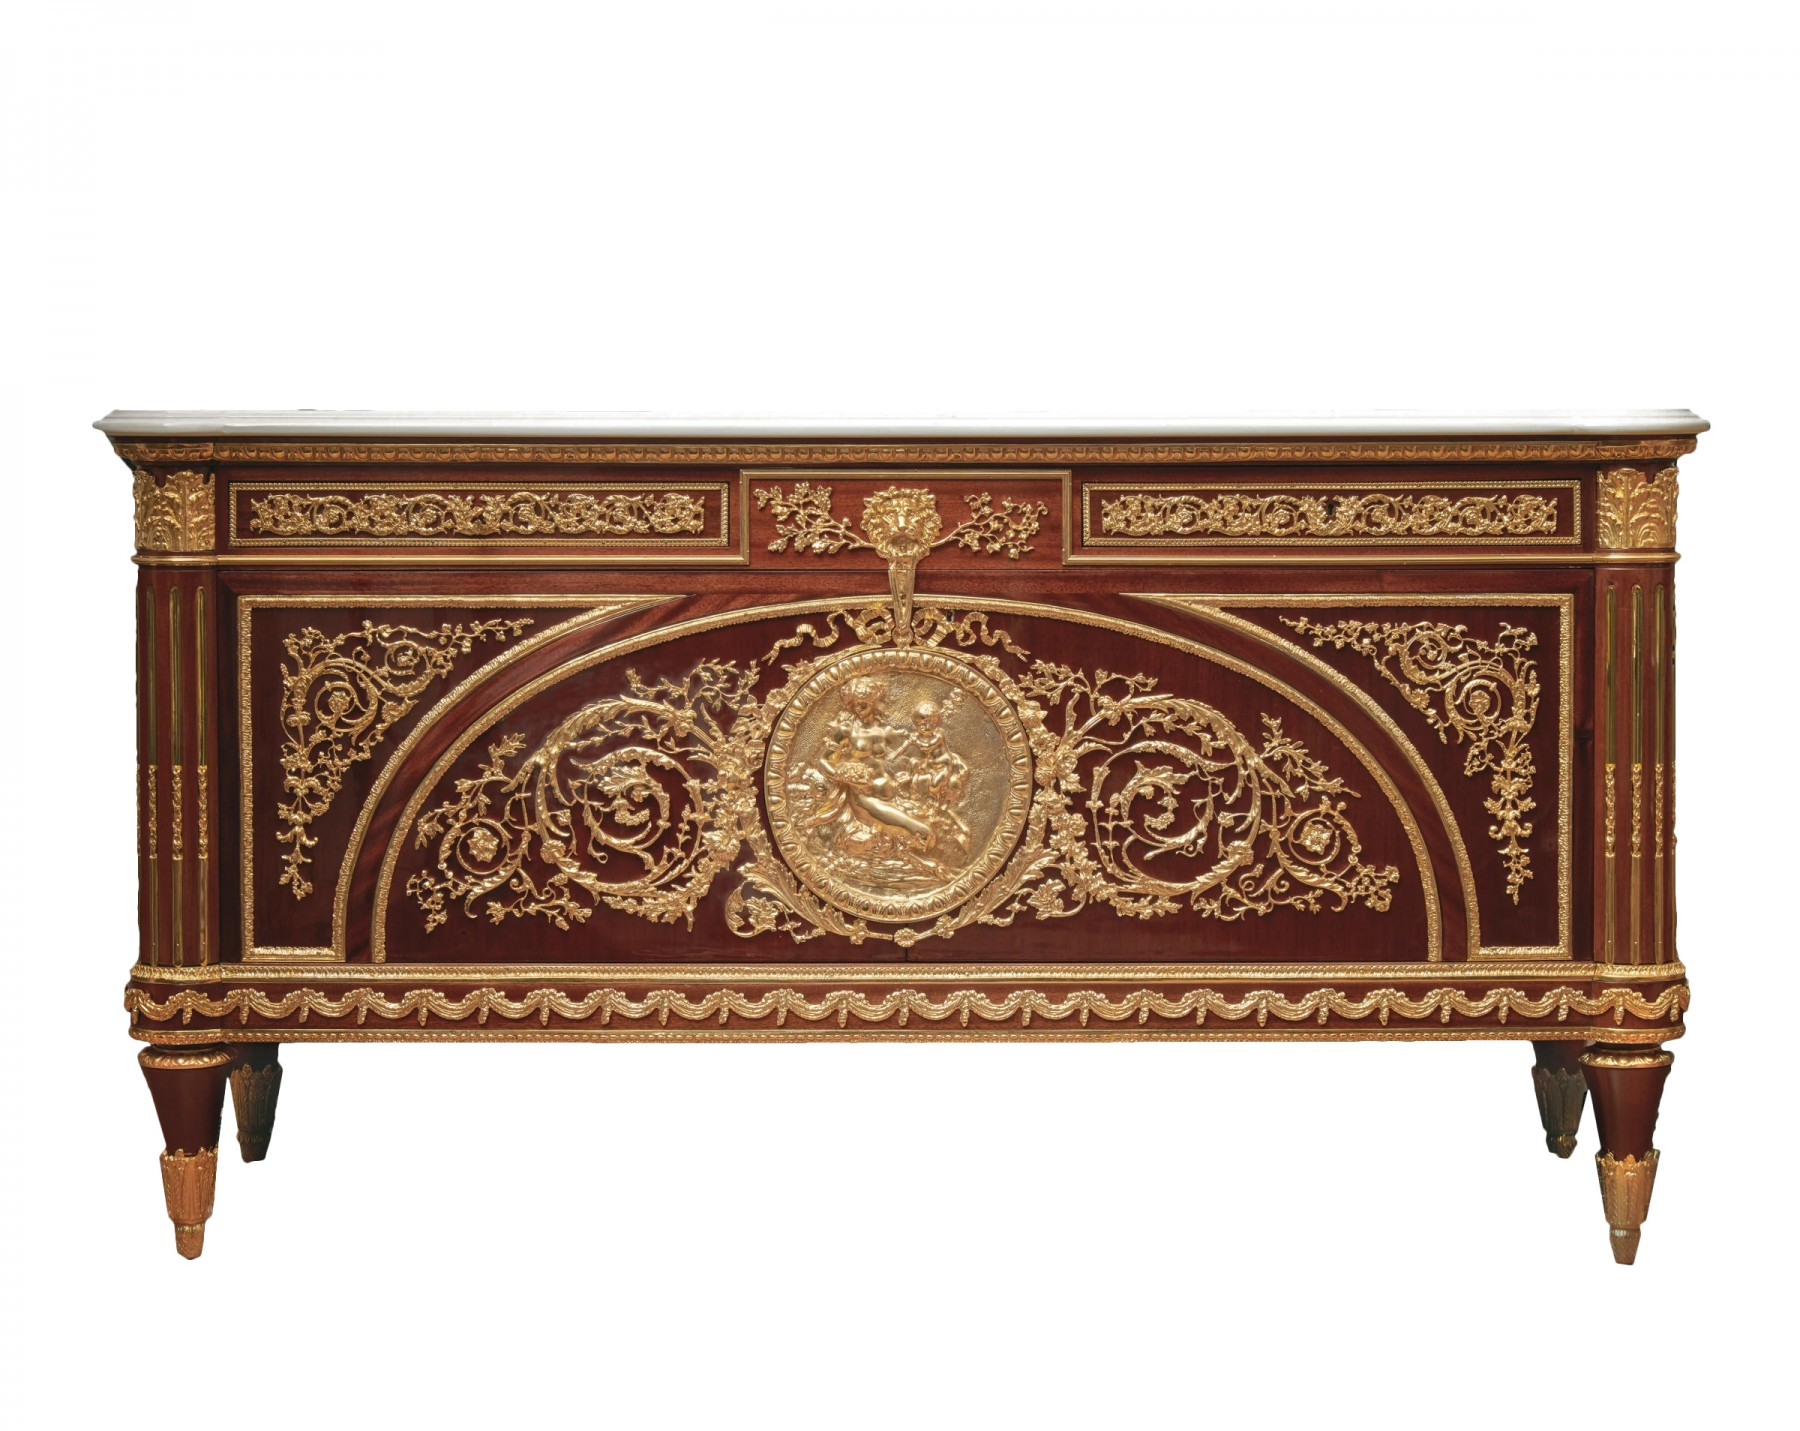 A French late 19th/early 20th century commode a vantaux after Benneman -  Ref.85995Anticstore